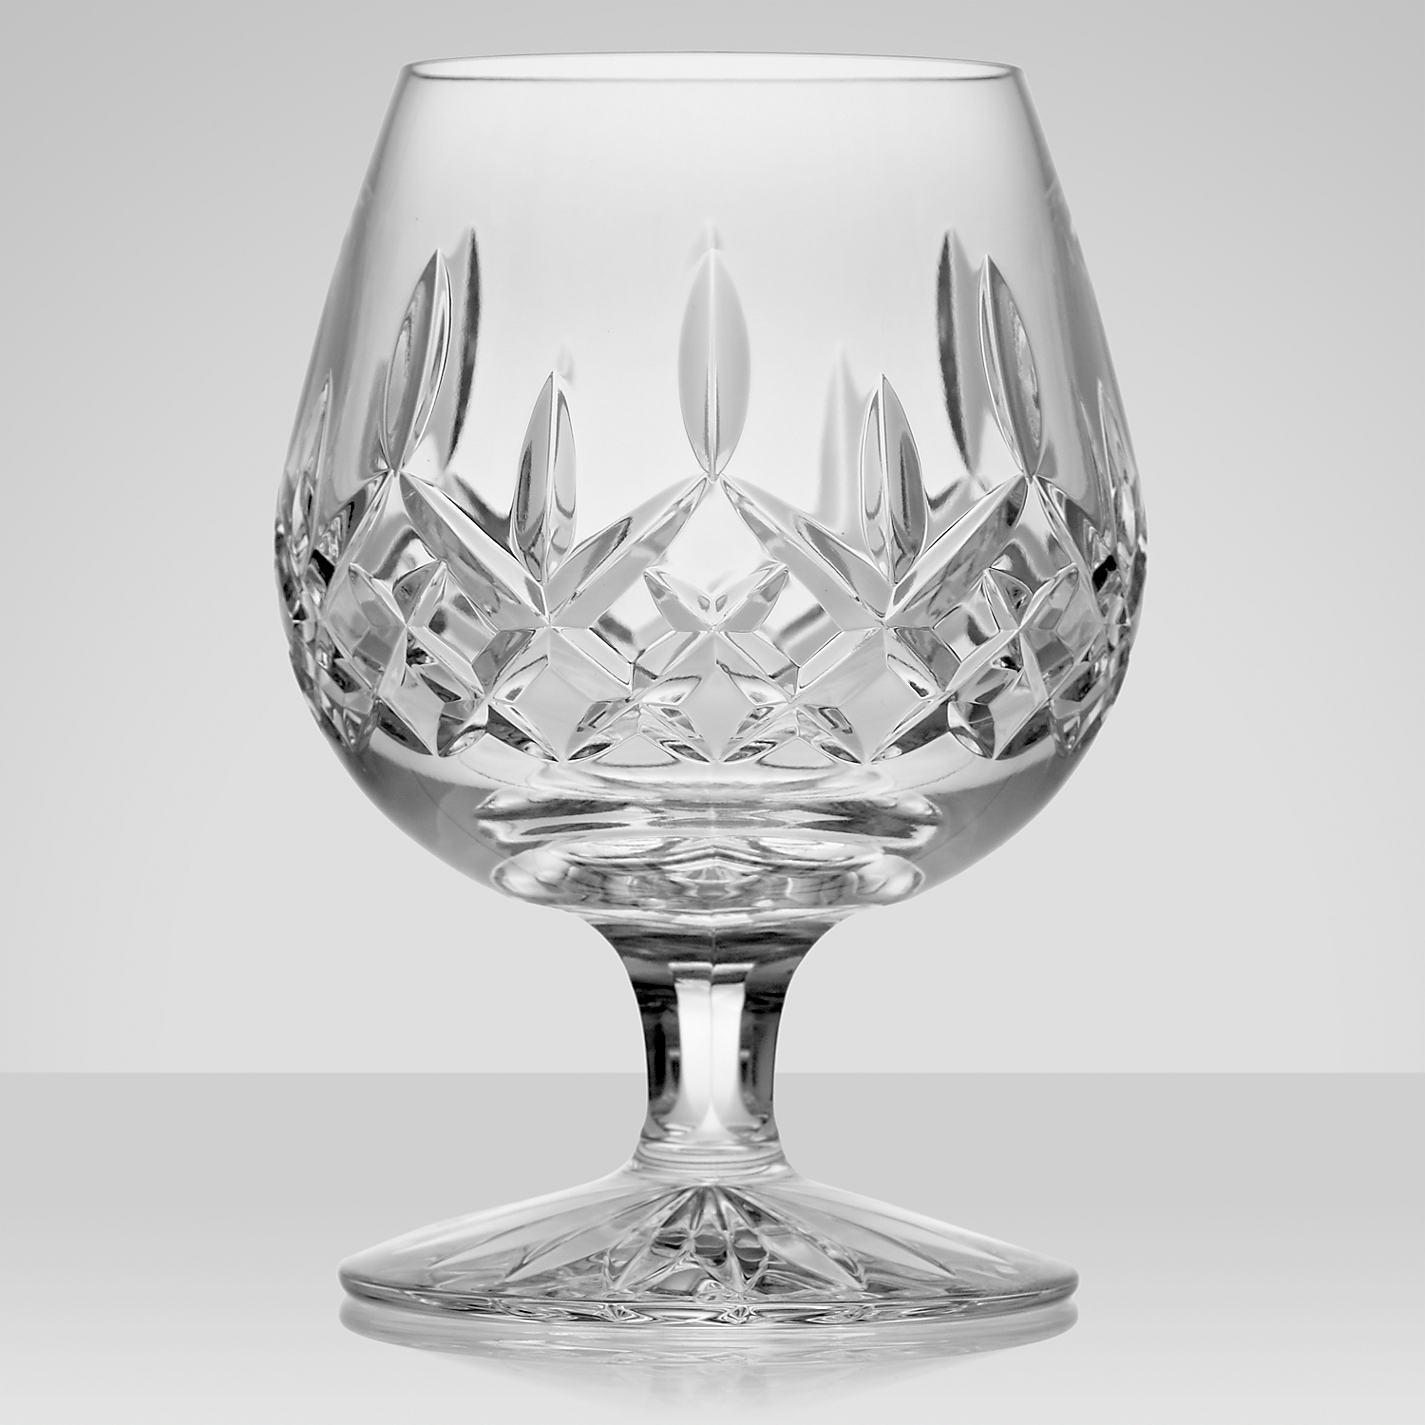 Dazzling Waterford Crystal Patterns For Dining Sets Ideas With Waterford Crystal Glass Patterns